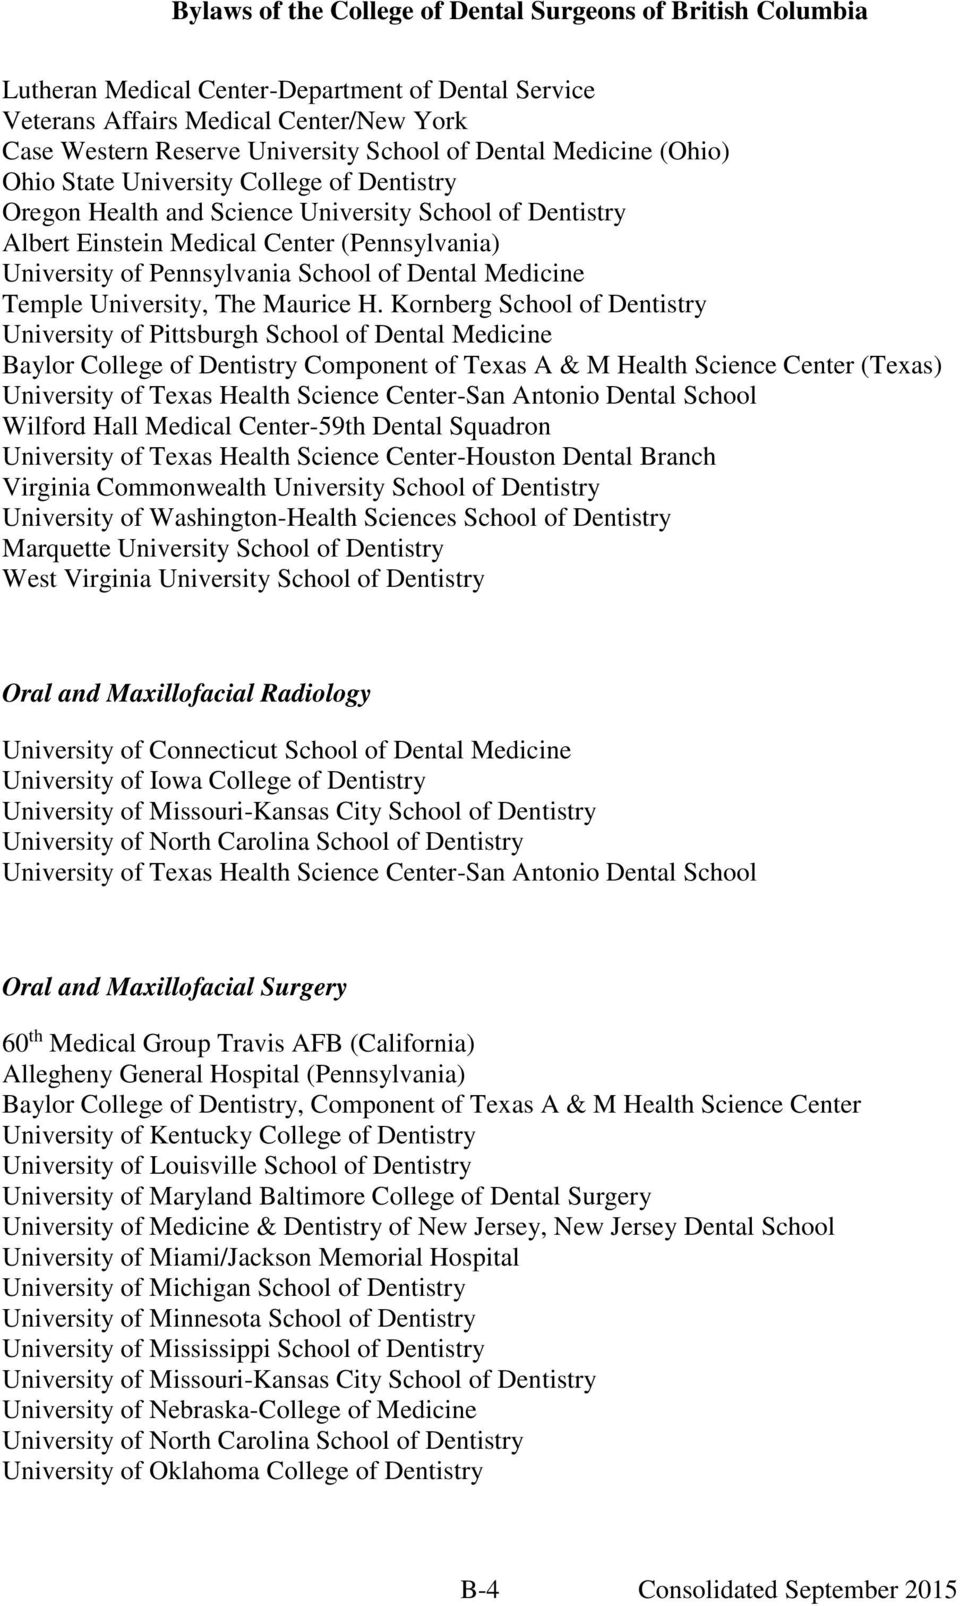 Kornberg School of Dentistry University of Pittsburgh School of Dental Medicine Baylor College of Dentistry Component of Texas A & M Health Science Center (Texas) University of Texas Health Science